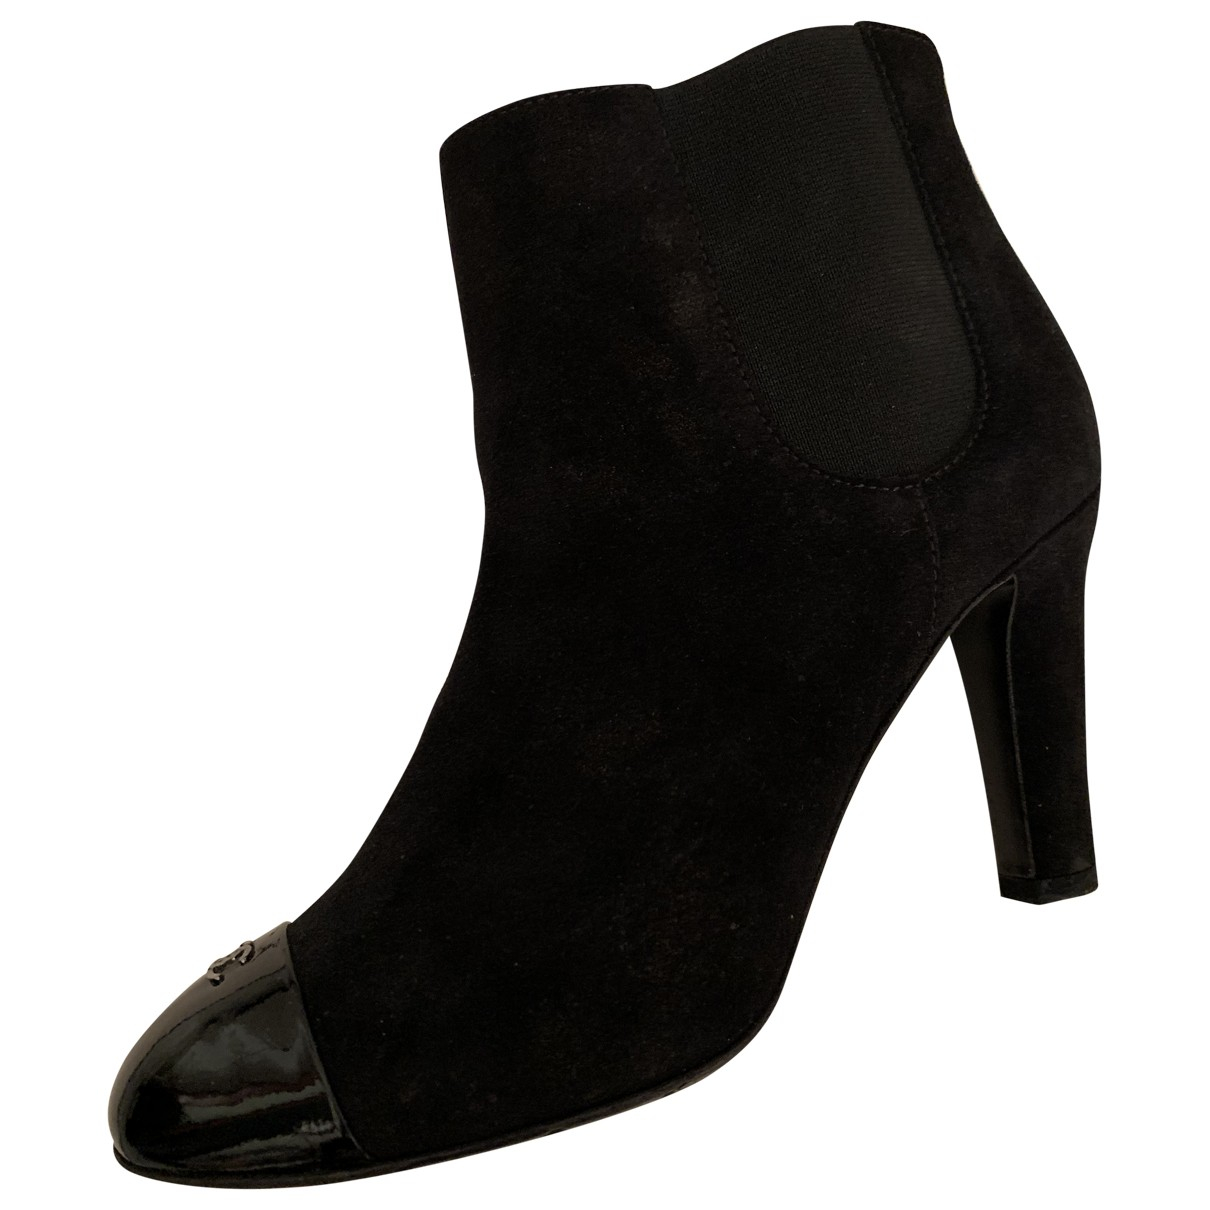 Chanel \N Black Suede Ankle boots for Women 36 EU